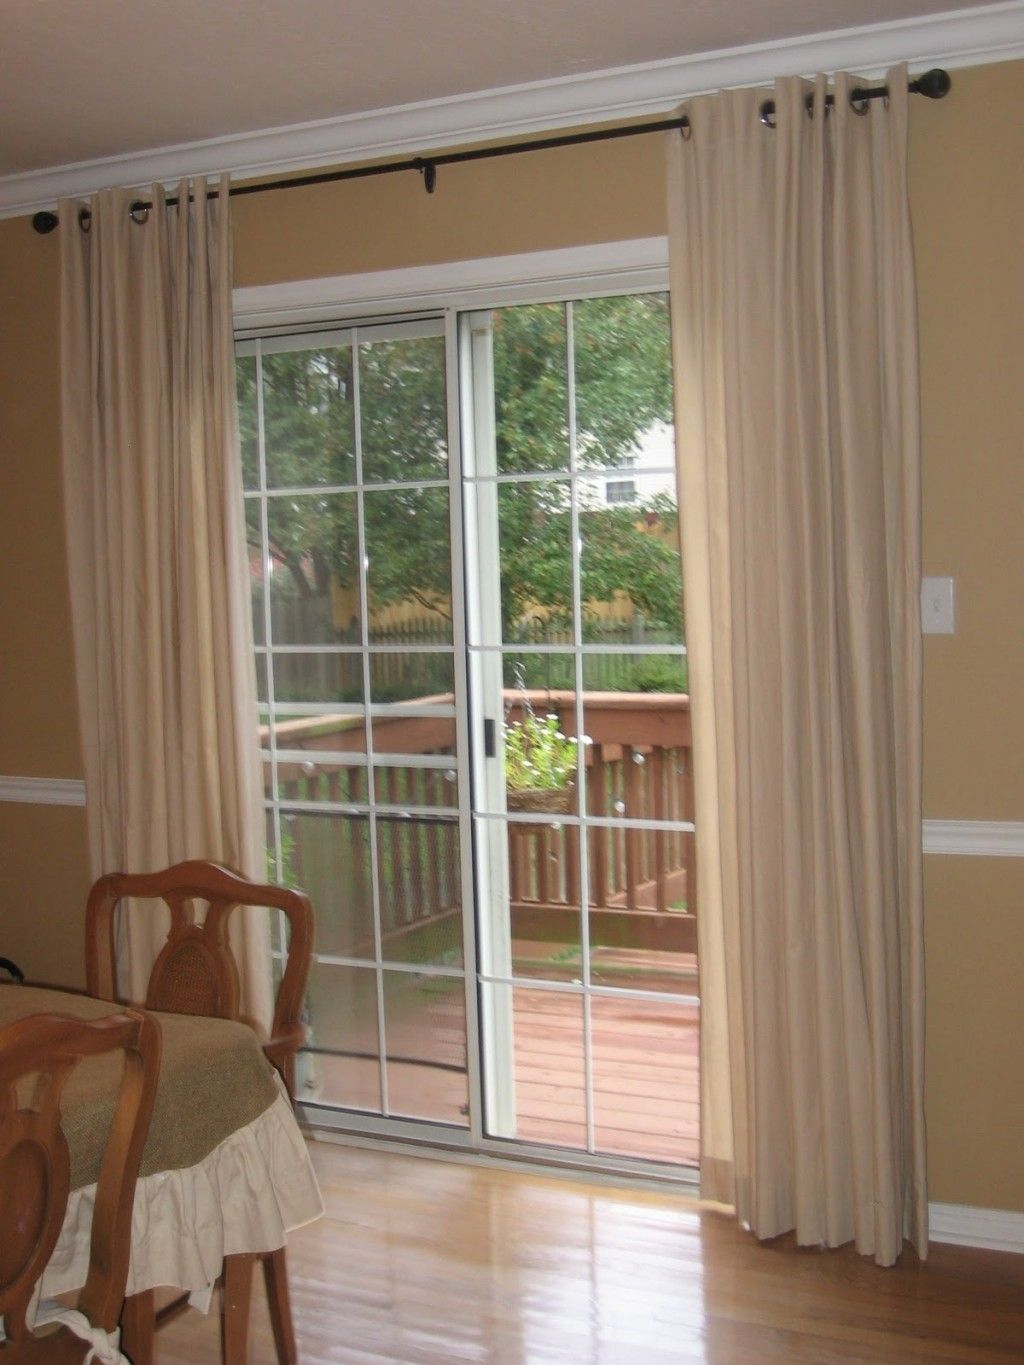 Extra Long Curtains For Sliding Glass Doors Window Treatments Bedroom Door Coverings Patio Door Window Treatments